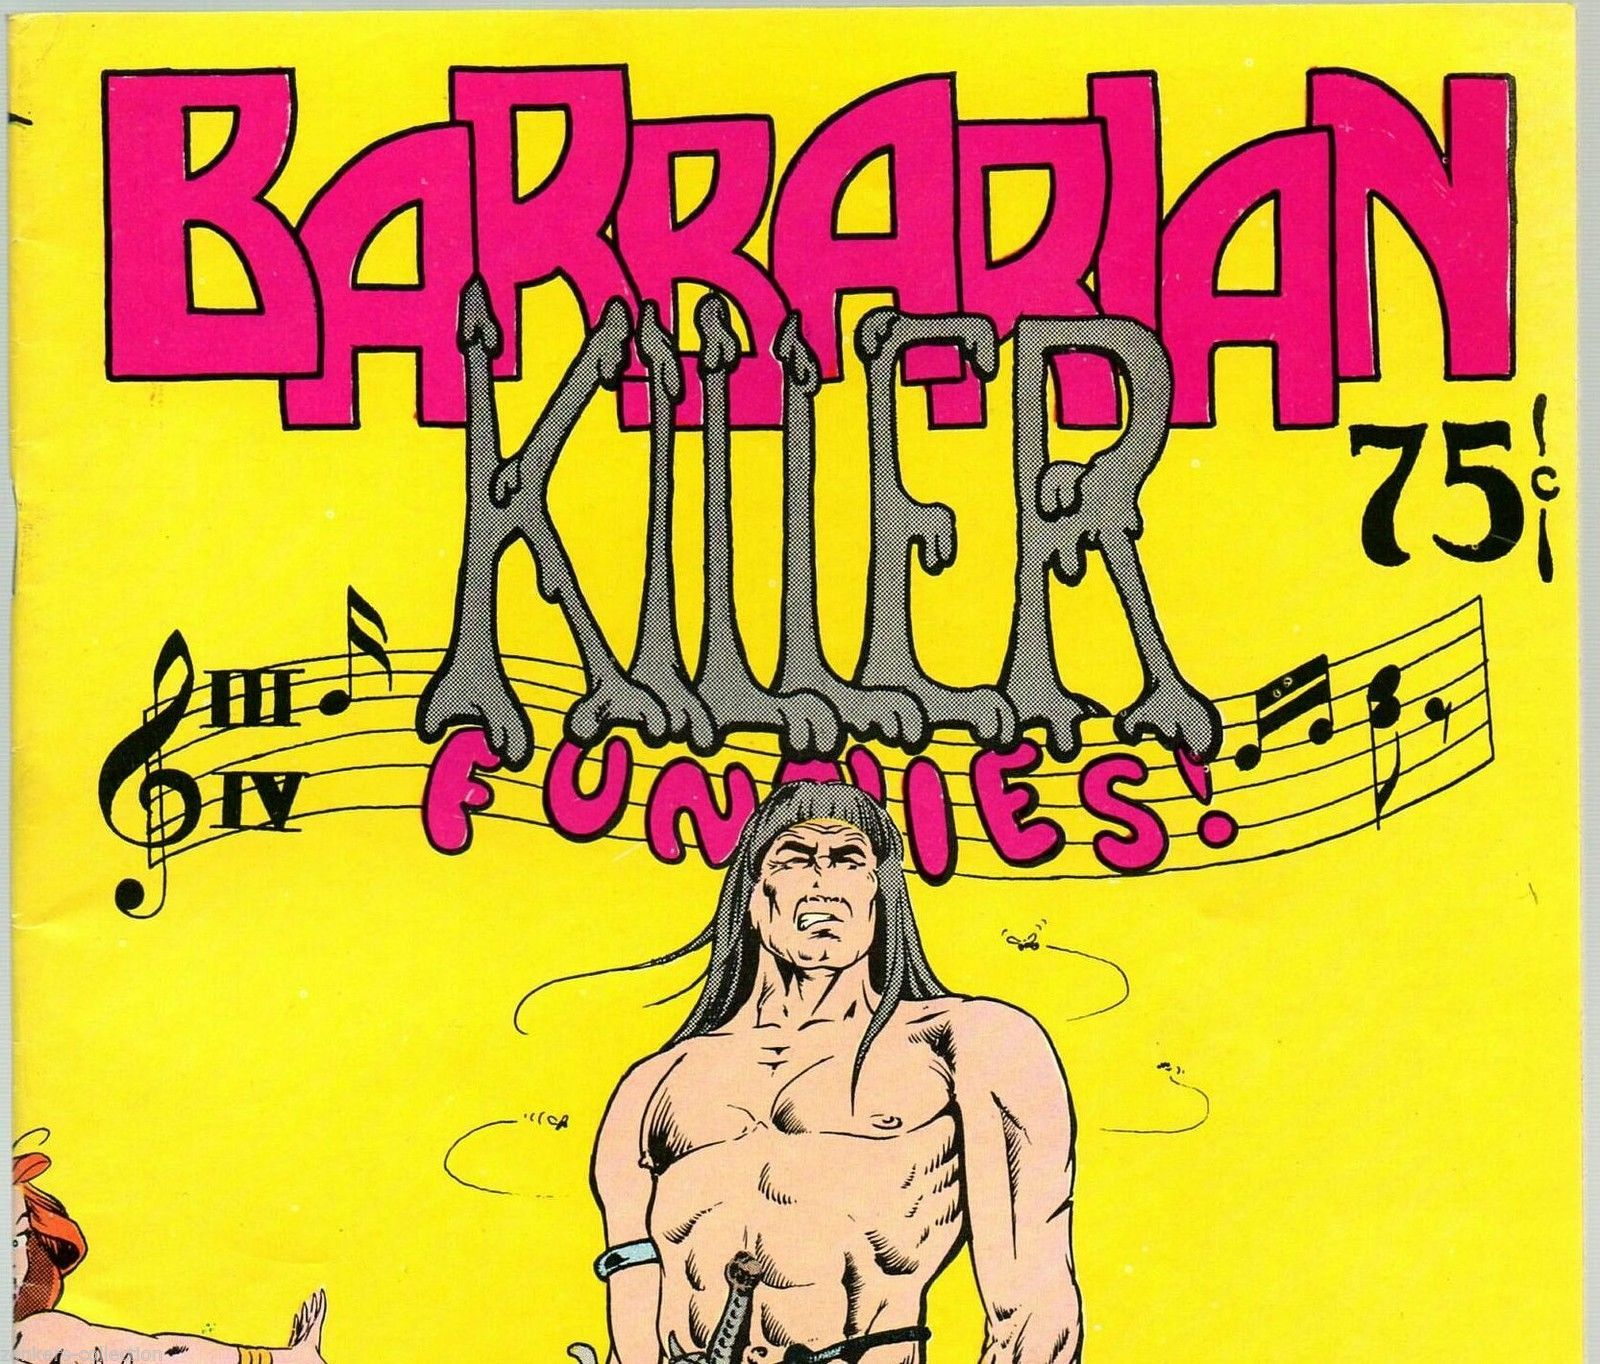 Barbarian Killer 1974  Bud Plant, underground comix, Tom Bird